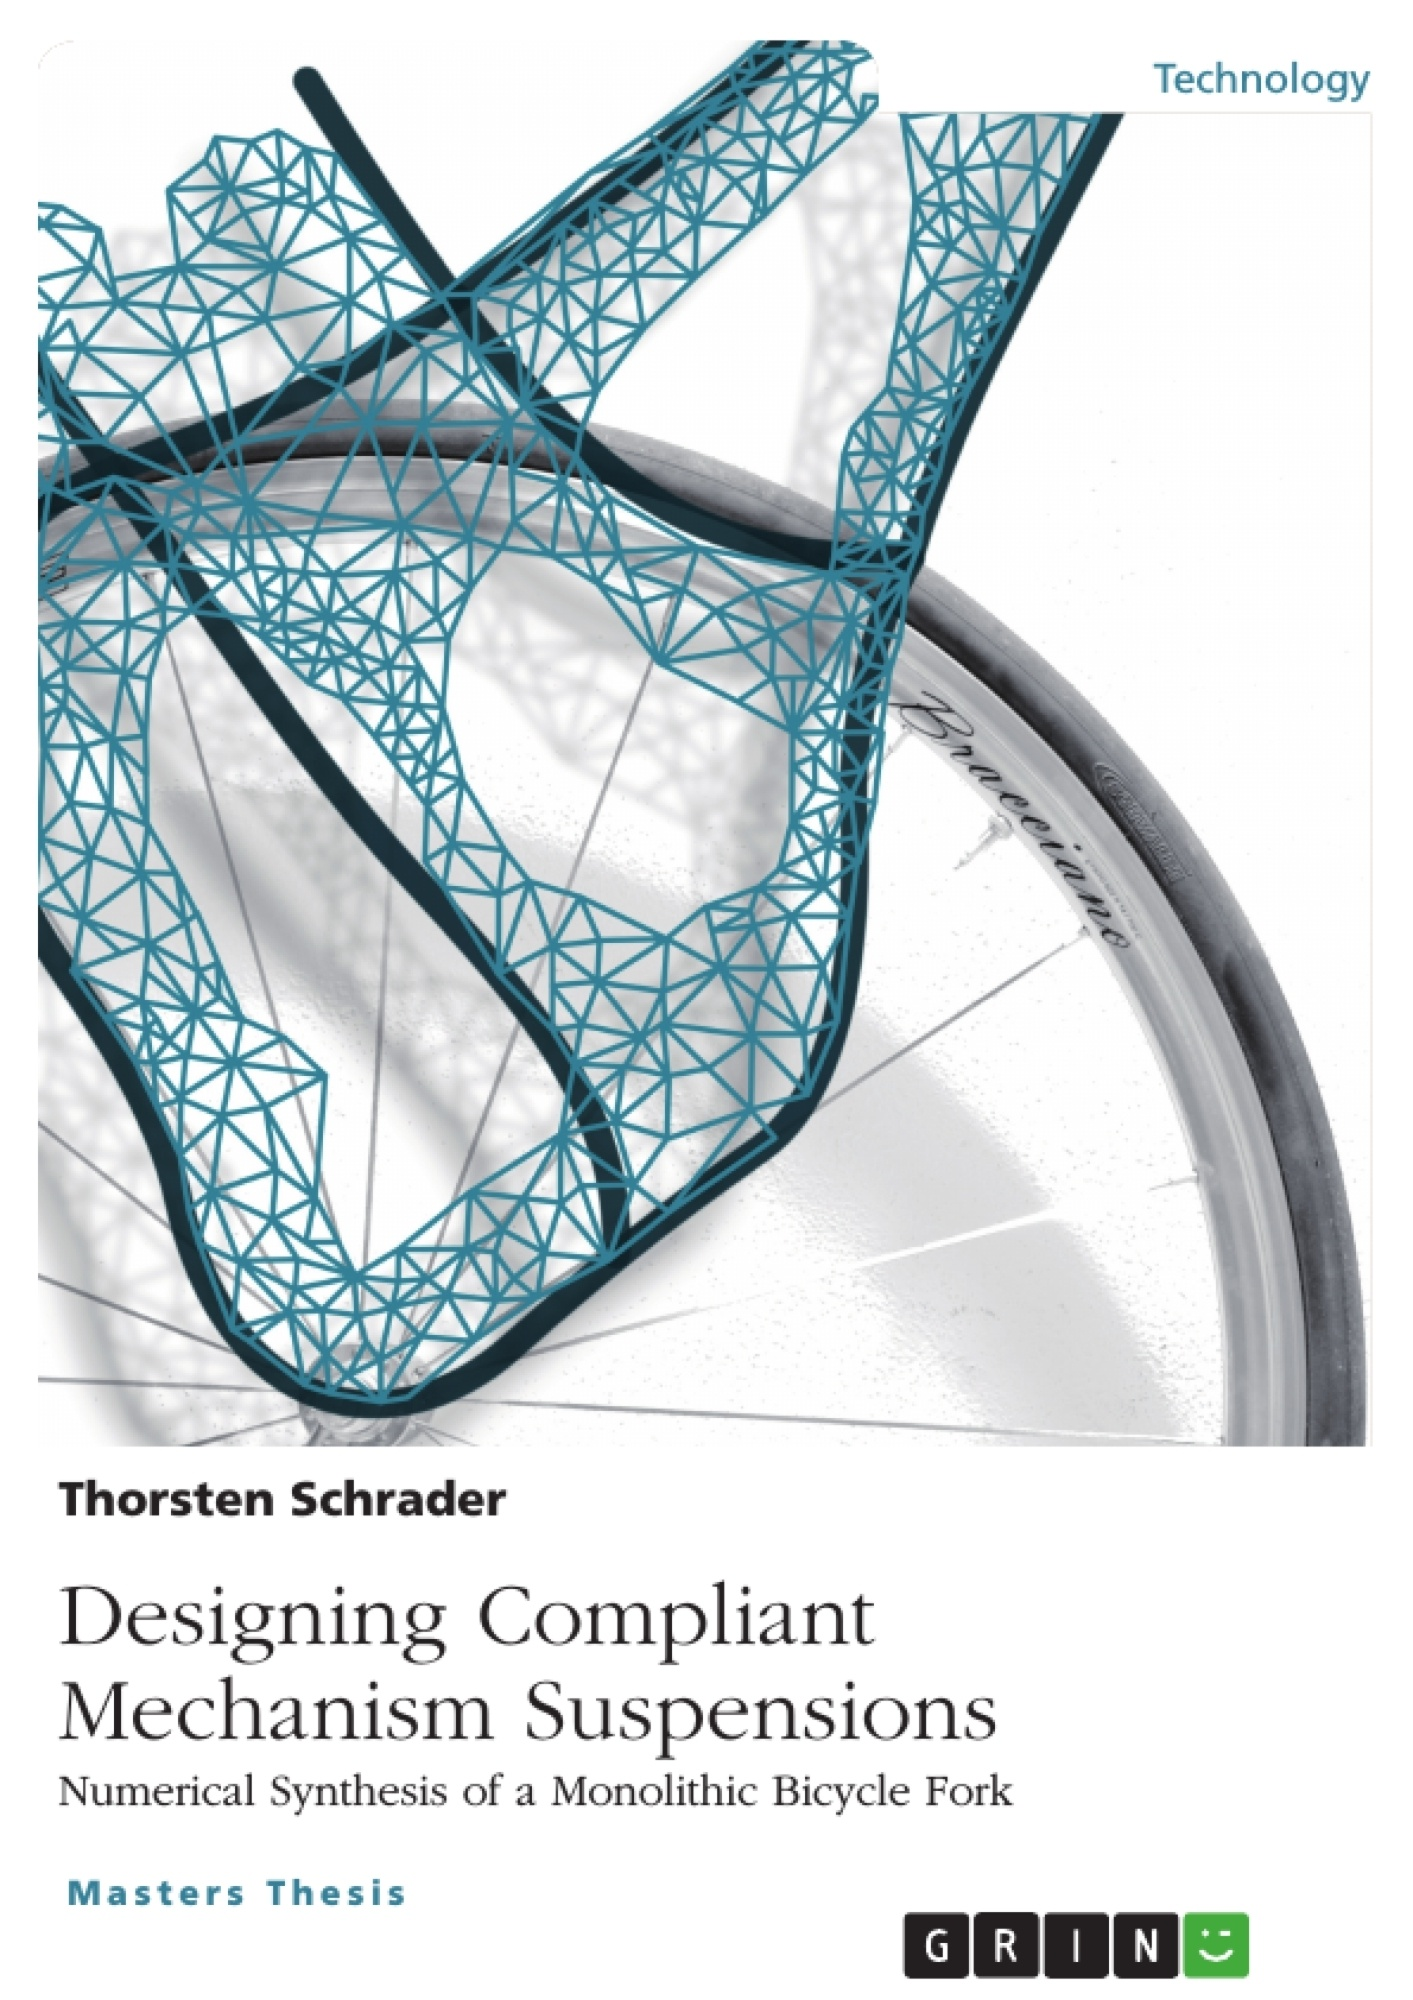 Title: Designing Compliant Mechanism Suspensions. Numerical Synthesis of a Monolithic Bicycle Fork